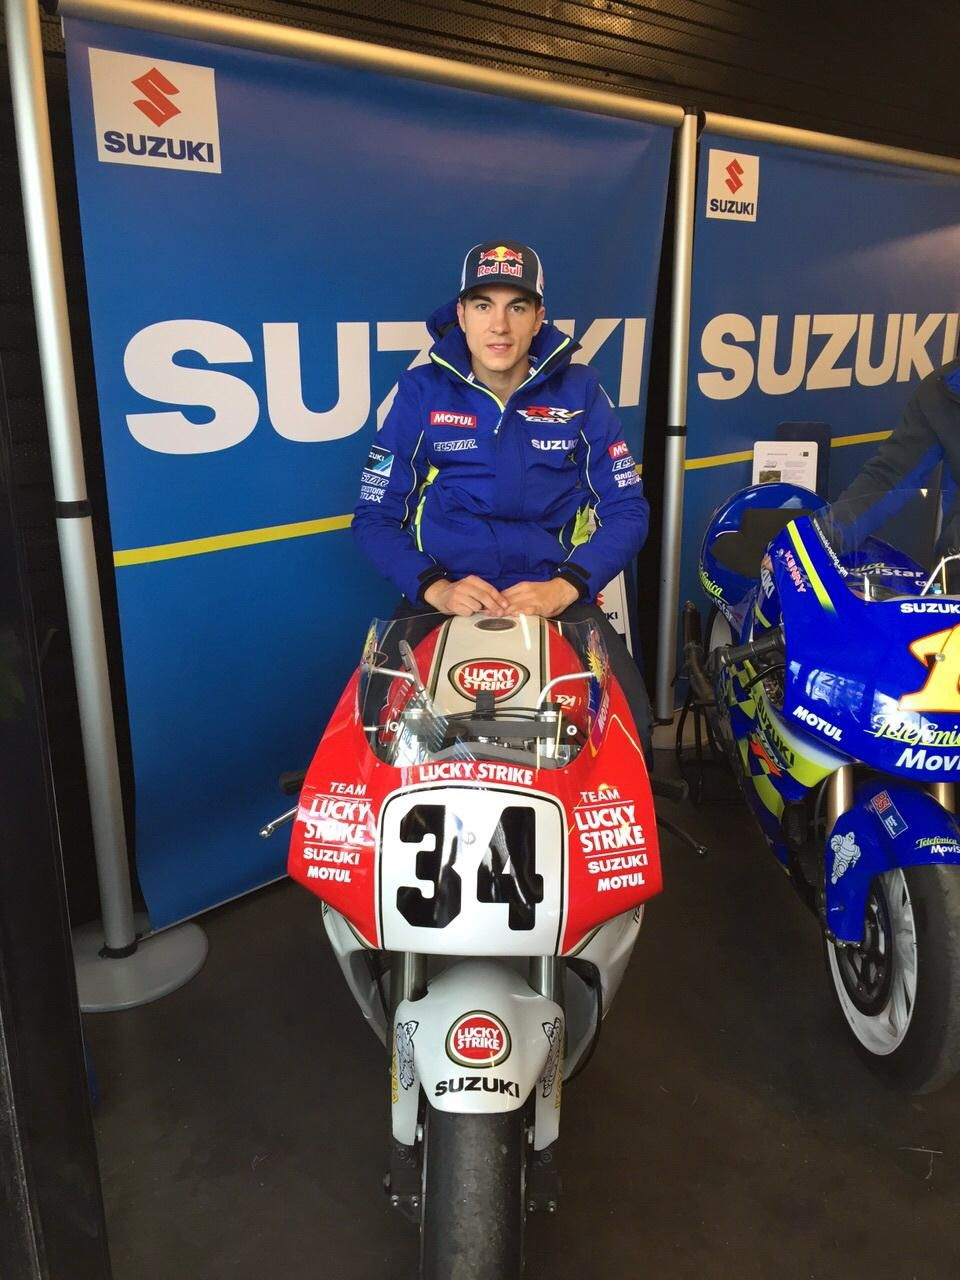 Suzuki RGV-Γ with Maverick Viñales